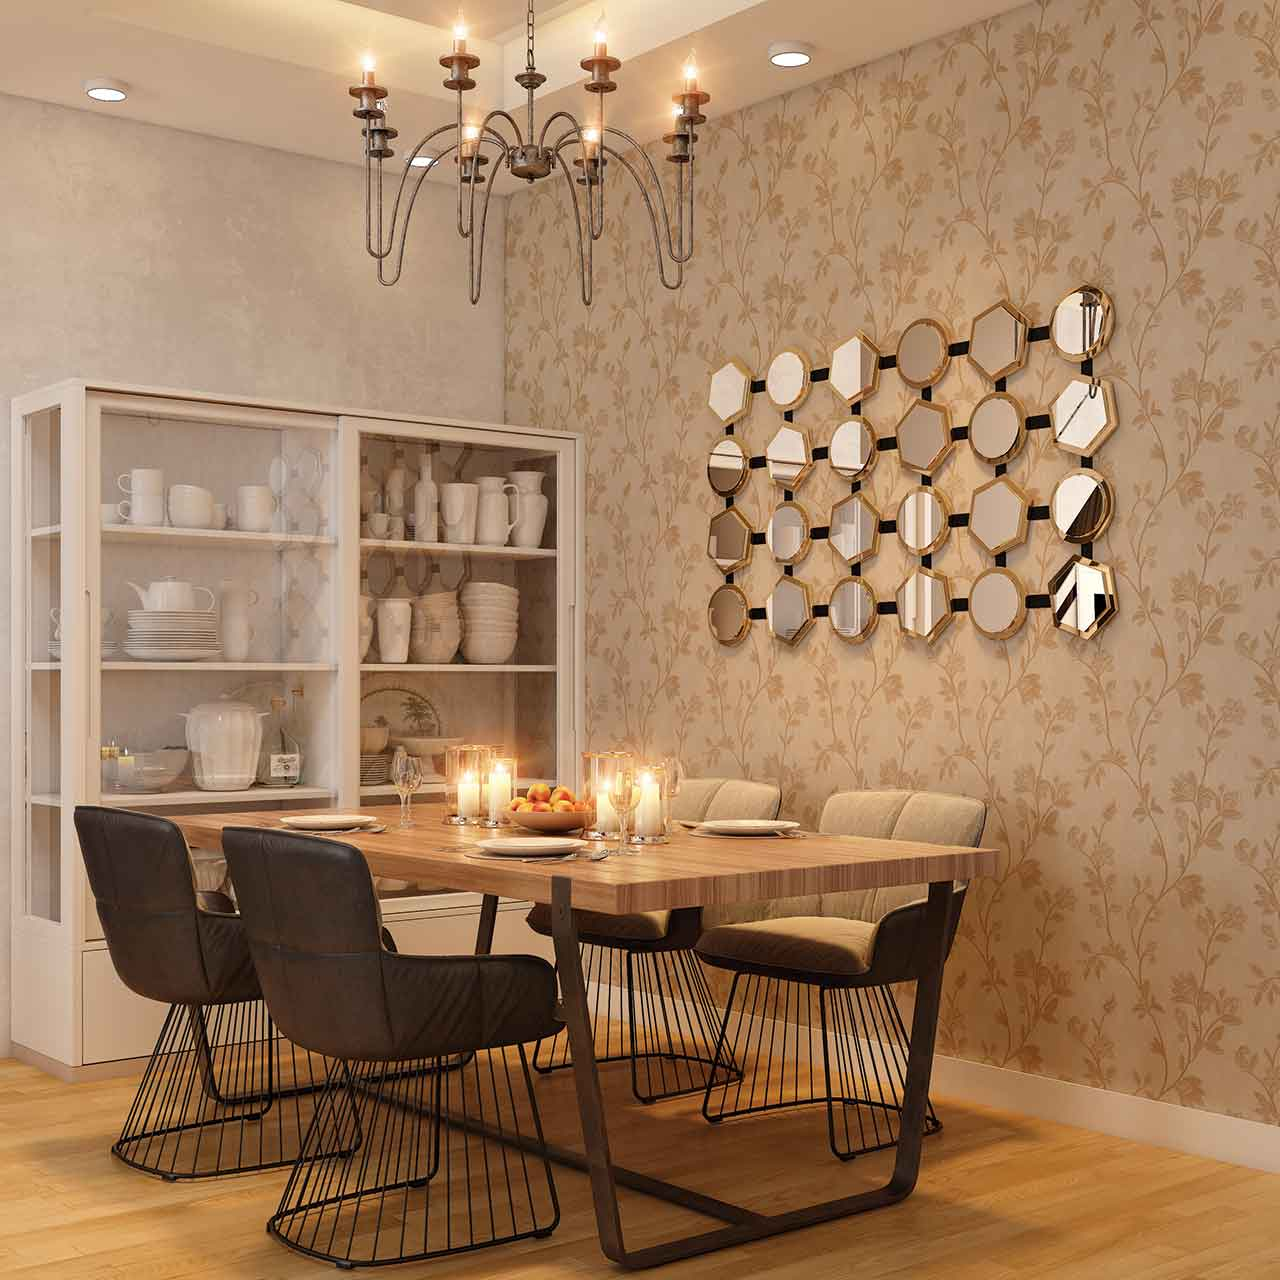 Dining room furniture for your home to turn your attention to other furniture in the indian dining room interior design pictures